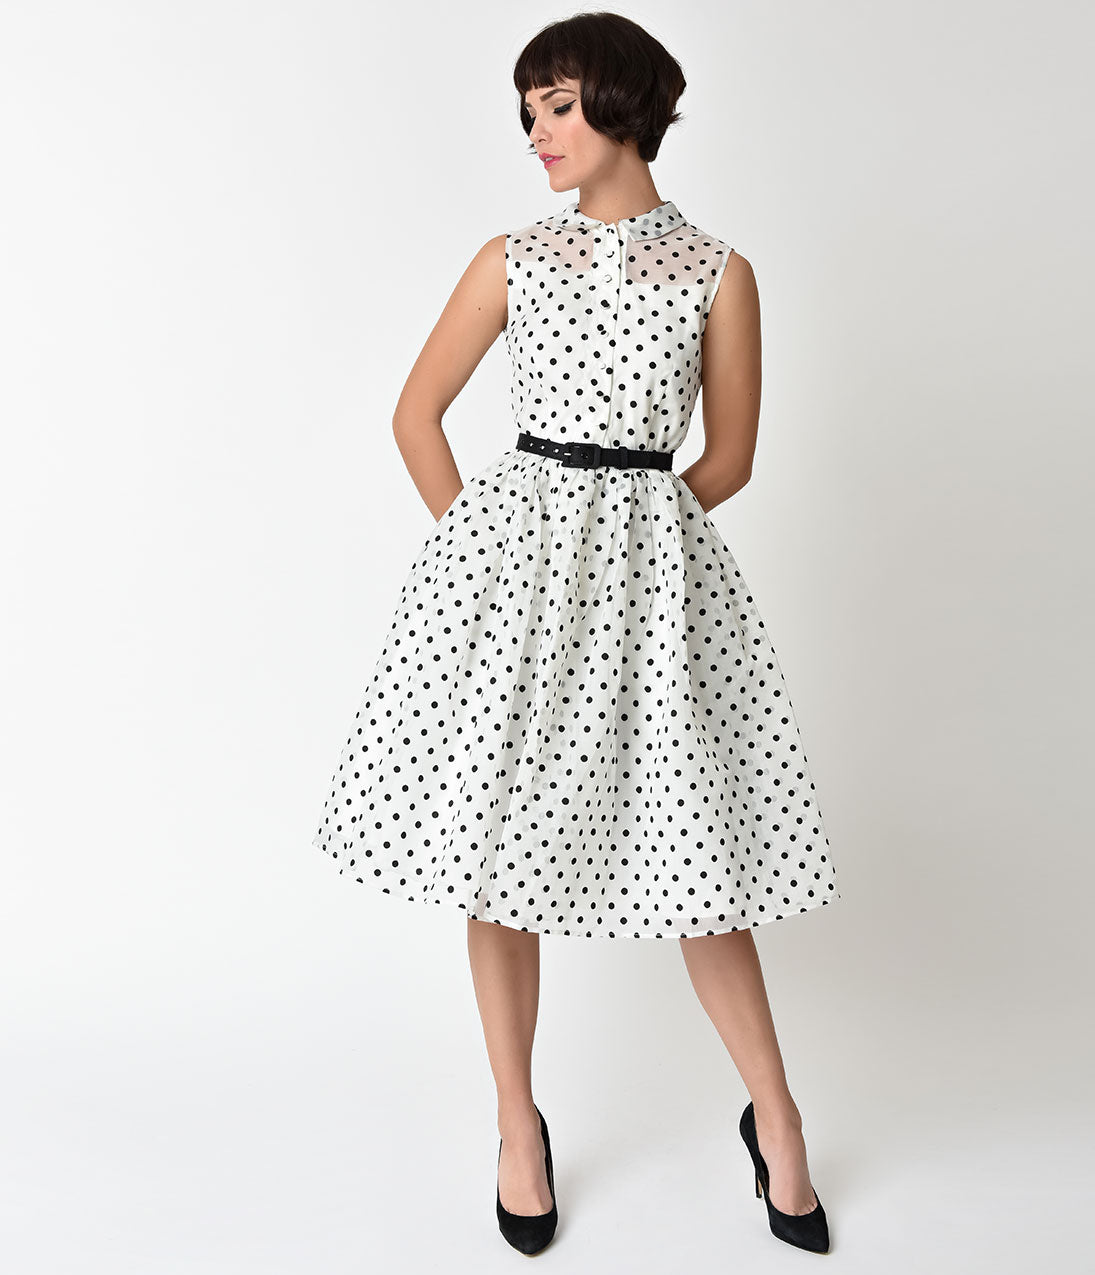 1950s Fashion History: Women's Clothing Unique Vintage 1950S Style White  Black Dotted Organza Georgia Swing Dress $110.00 AT vintagedancer.com